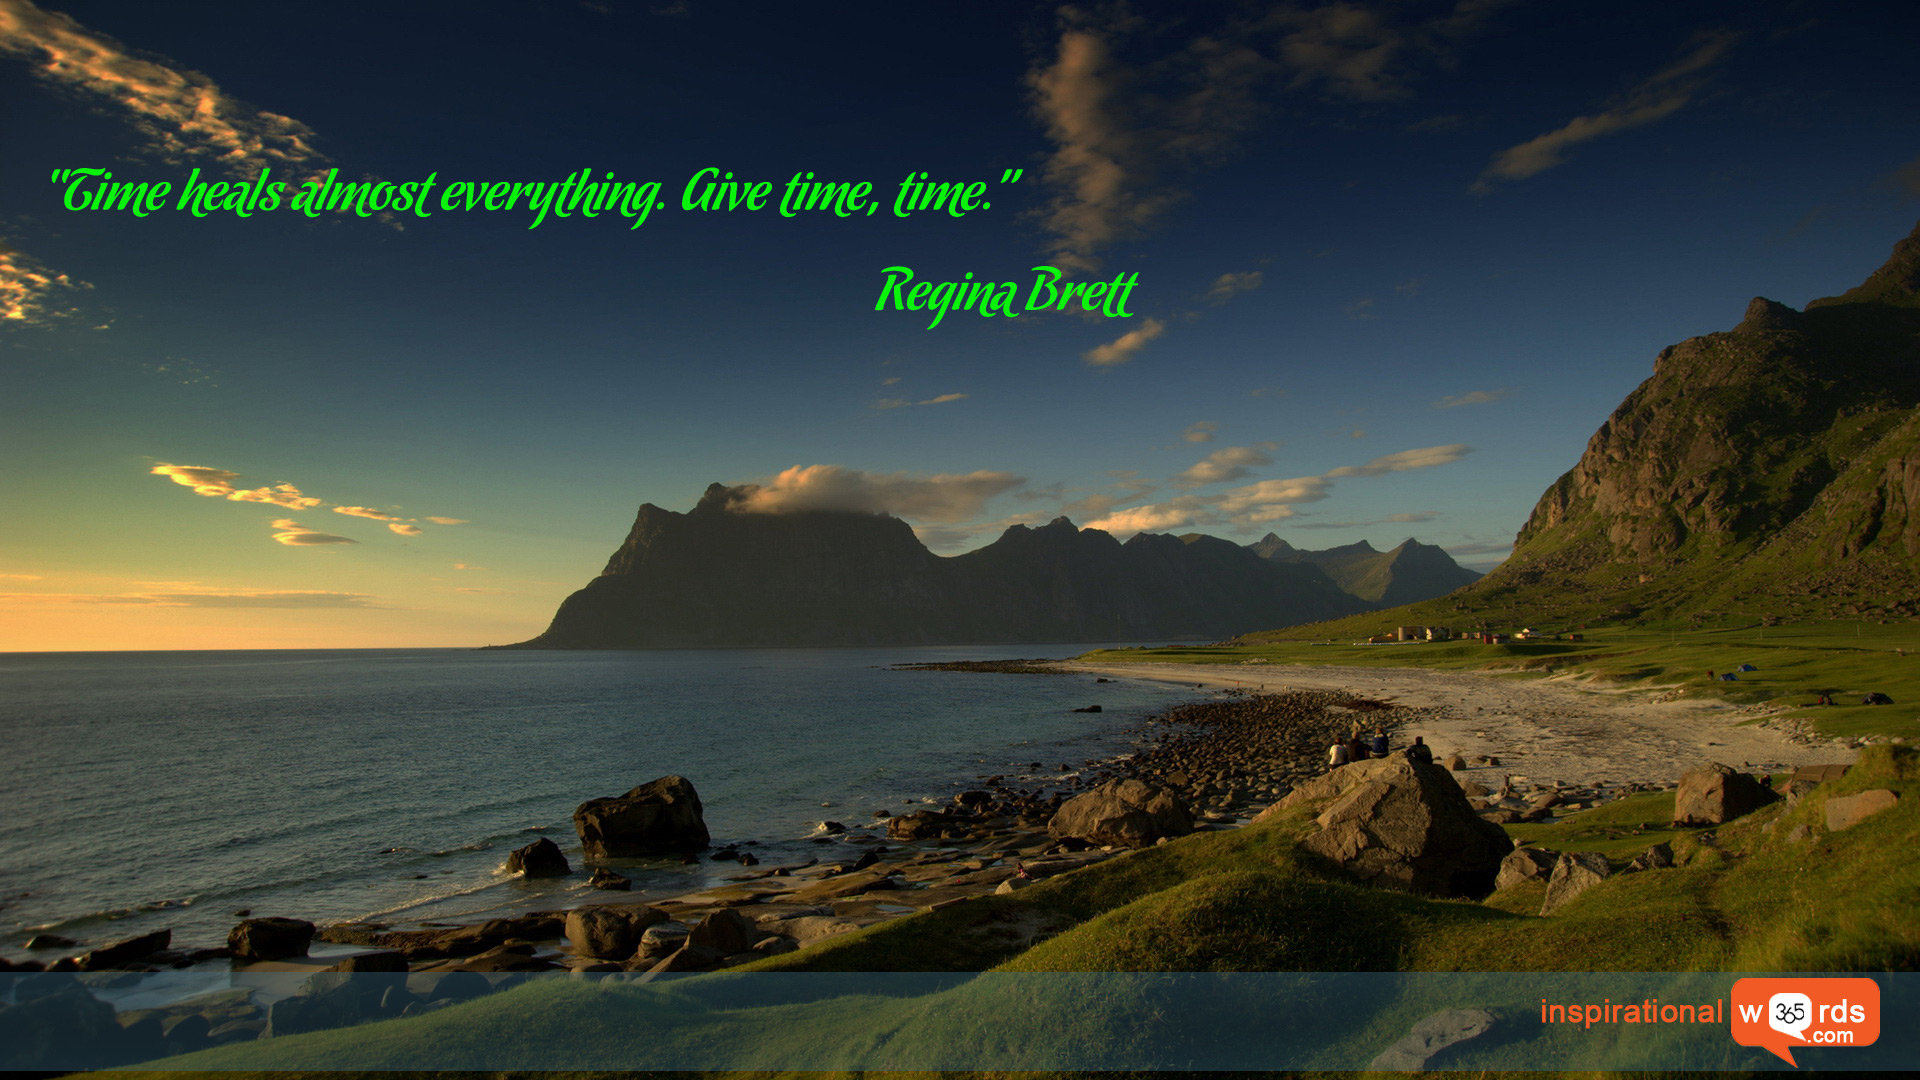 Inspirational Wallpaper Quote by Regina Brett